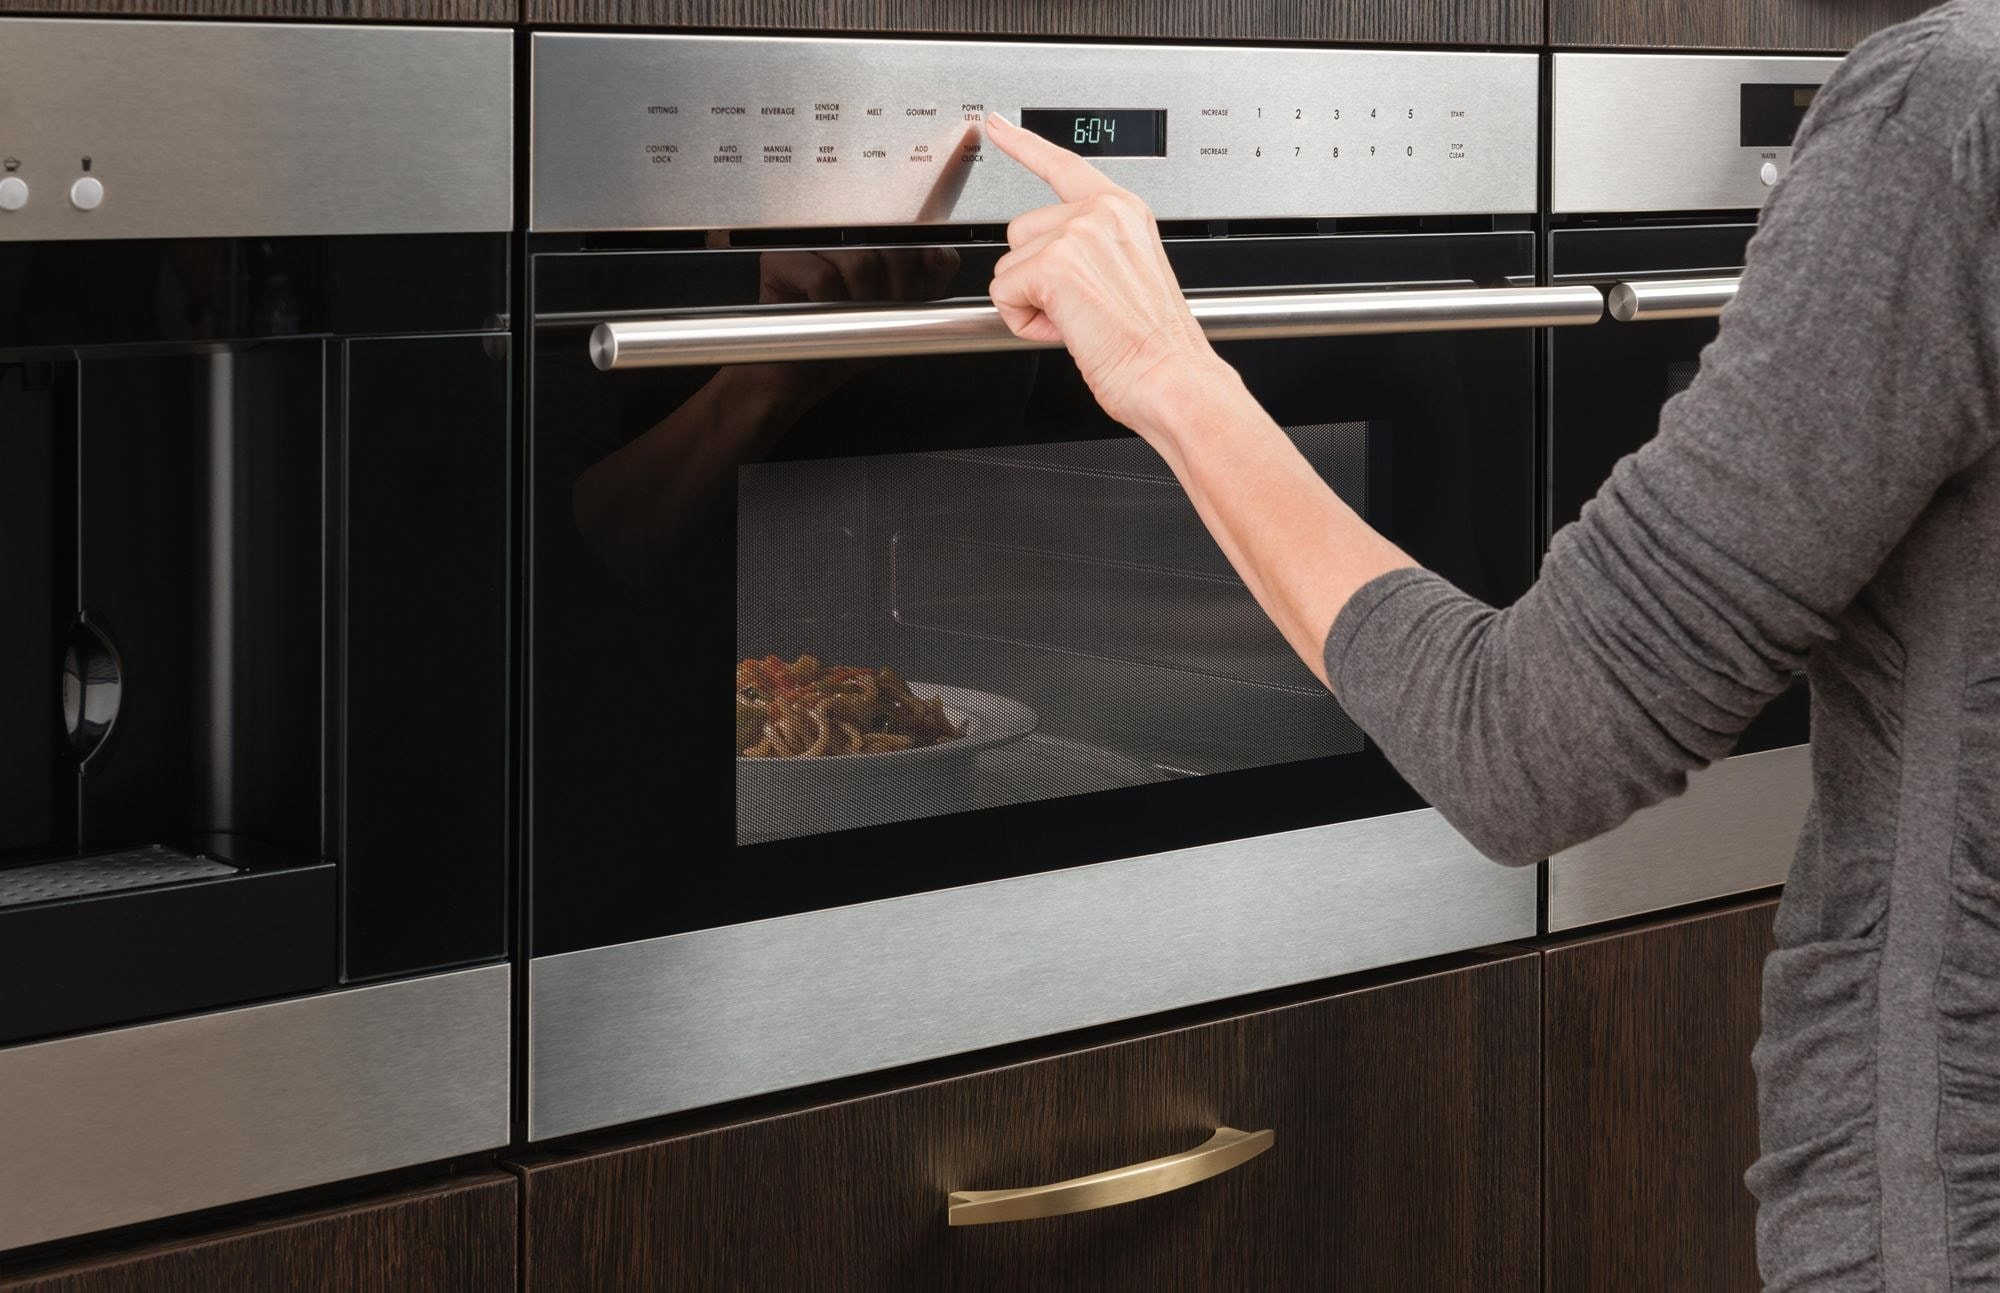 Wolf Built-In Microwaves available in drawer, drop-down door and side-swing microwave models blending beautifully into your kitchen design